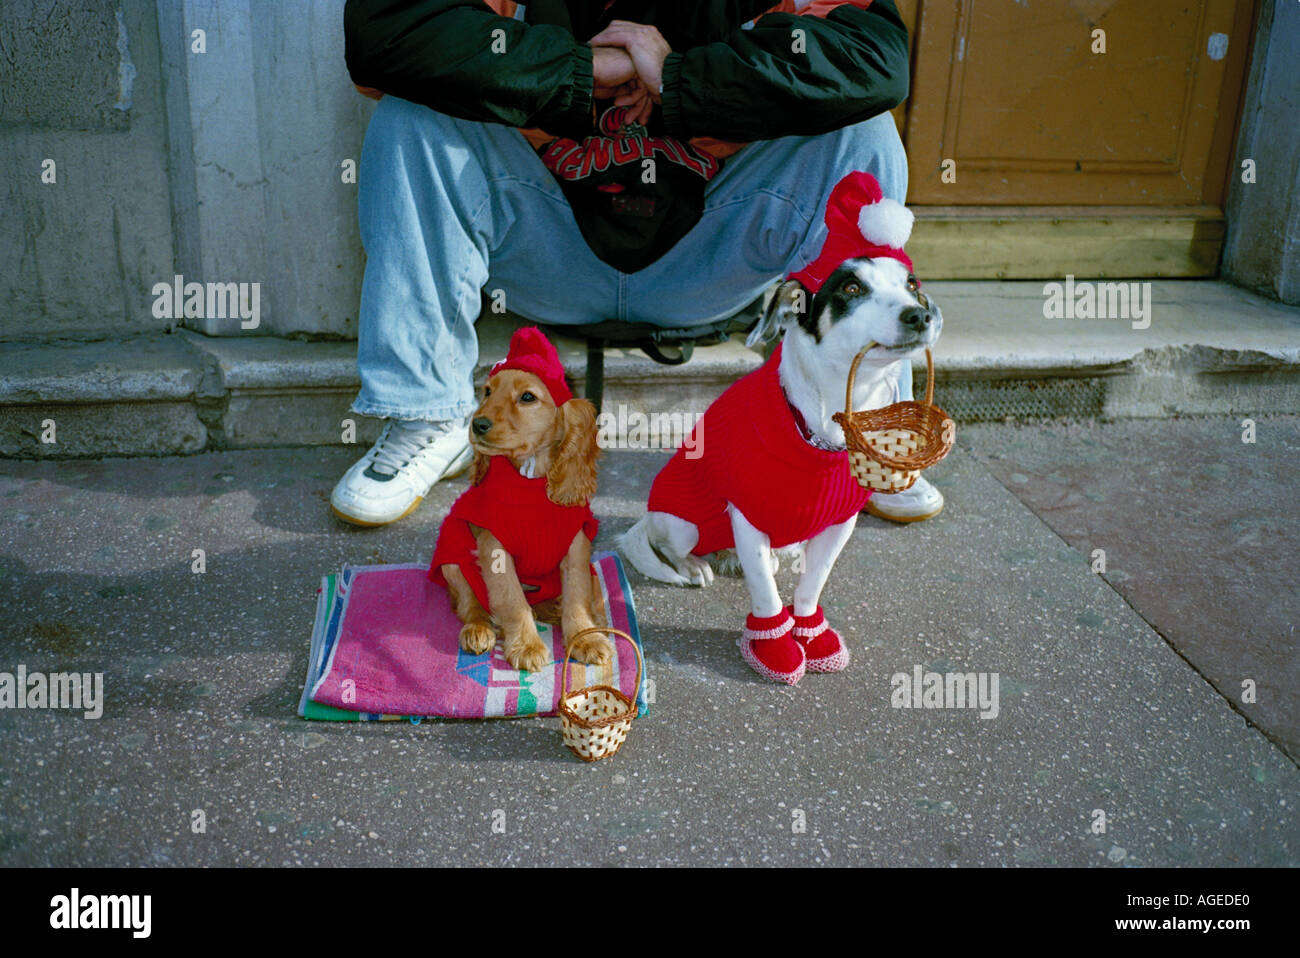 Two canine Santa lookalikes begging on Avenue Jean Medecin Nice France on the run up to Christmas - Stock Image